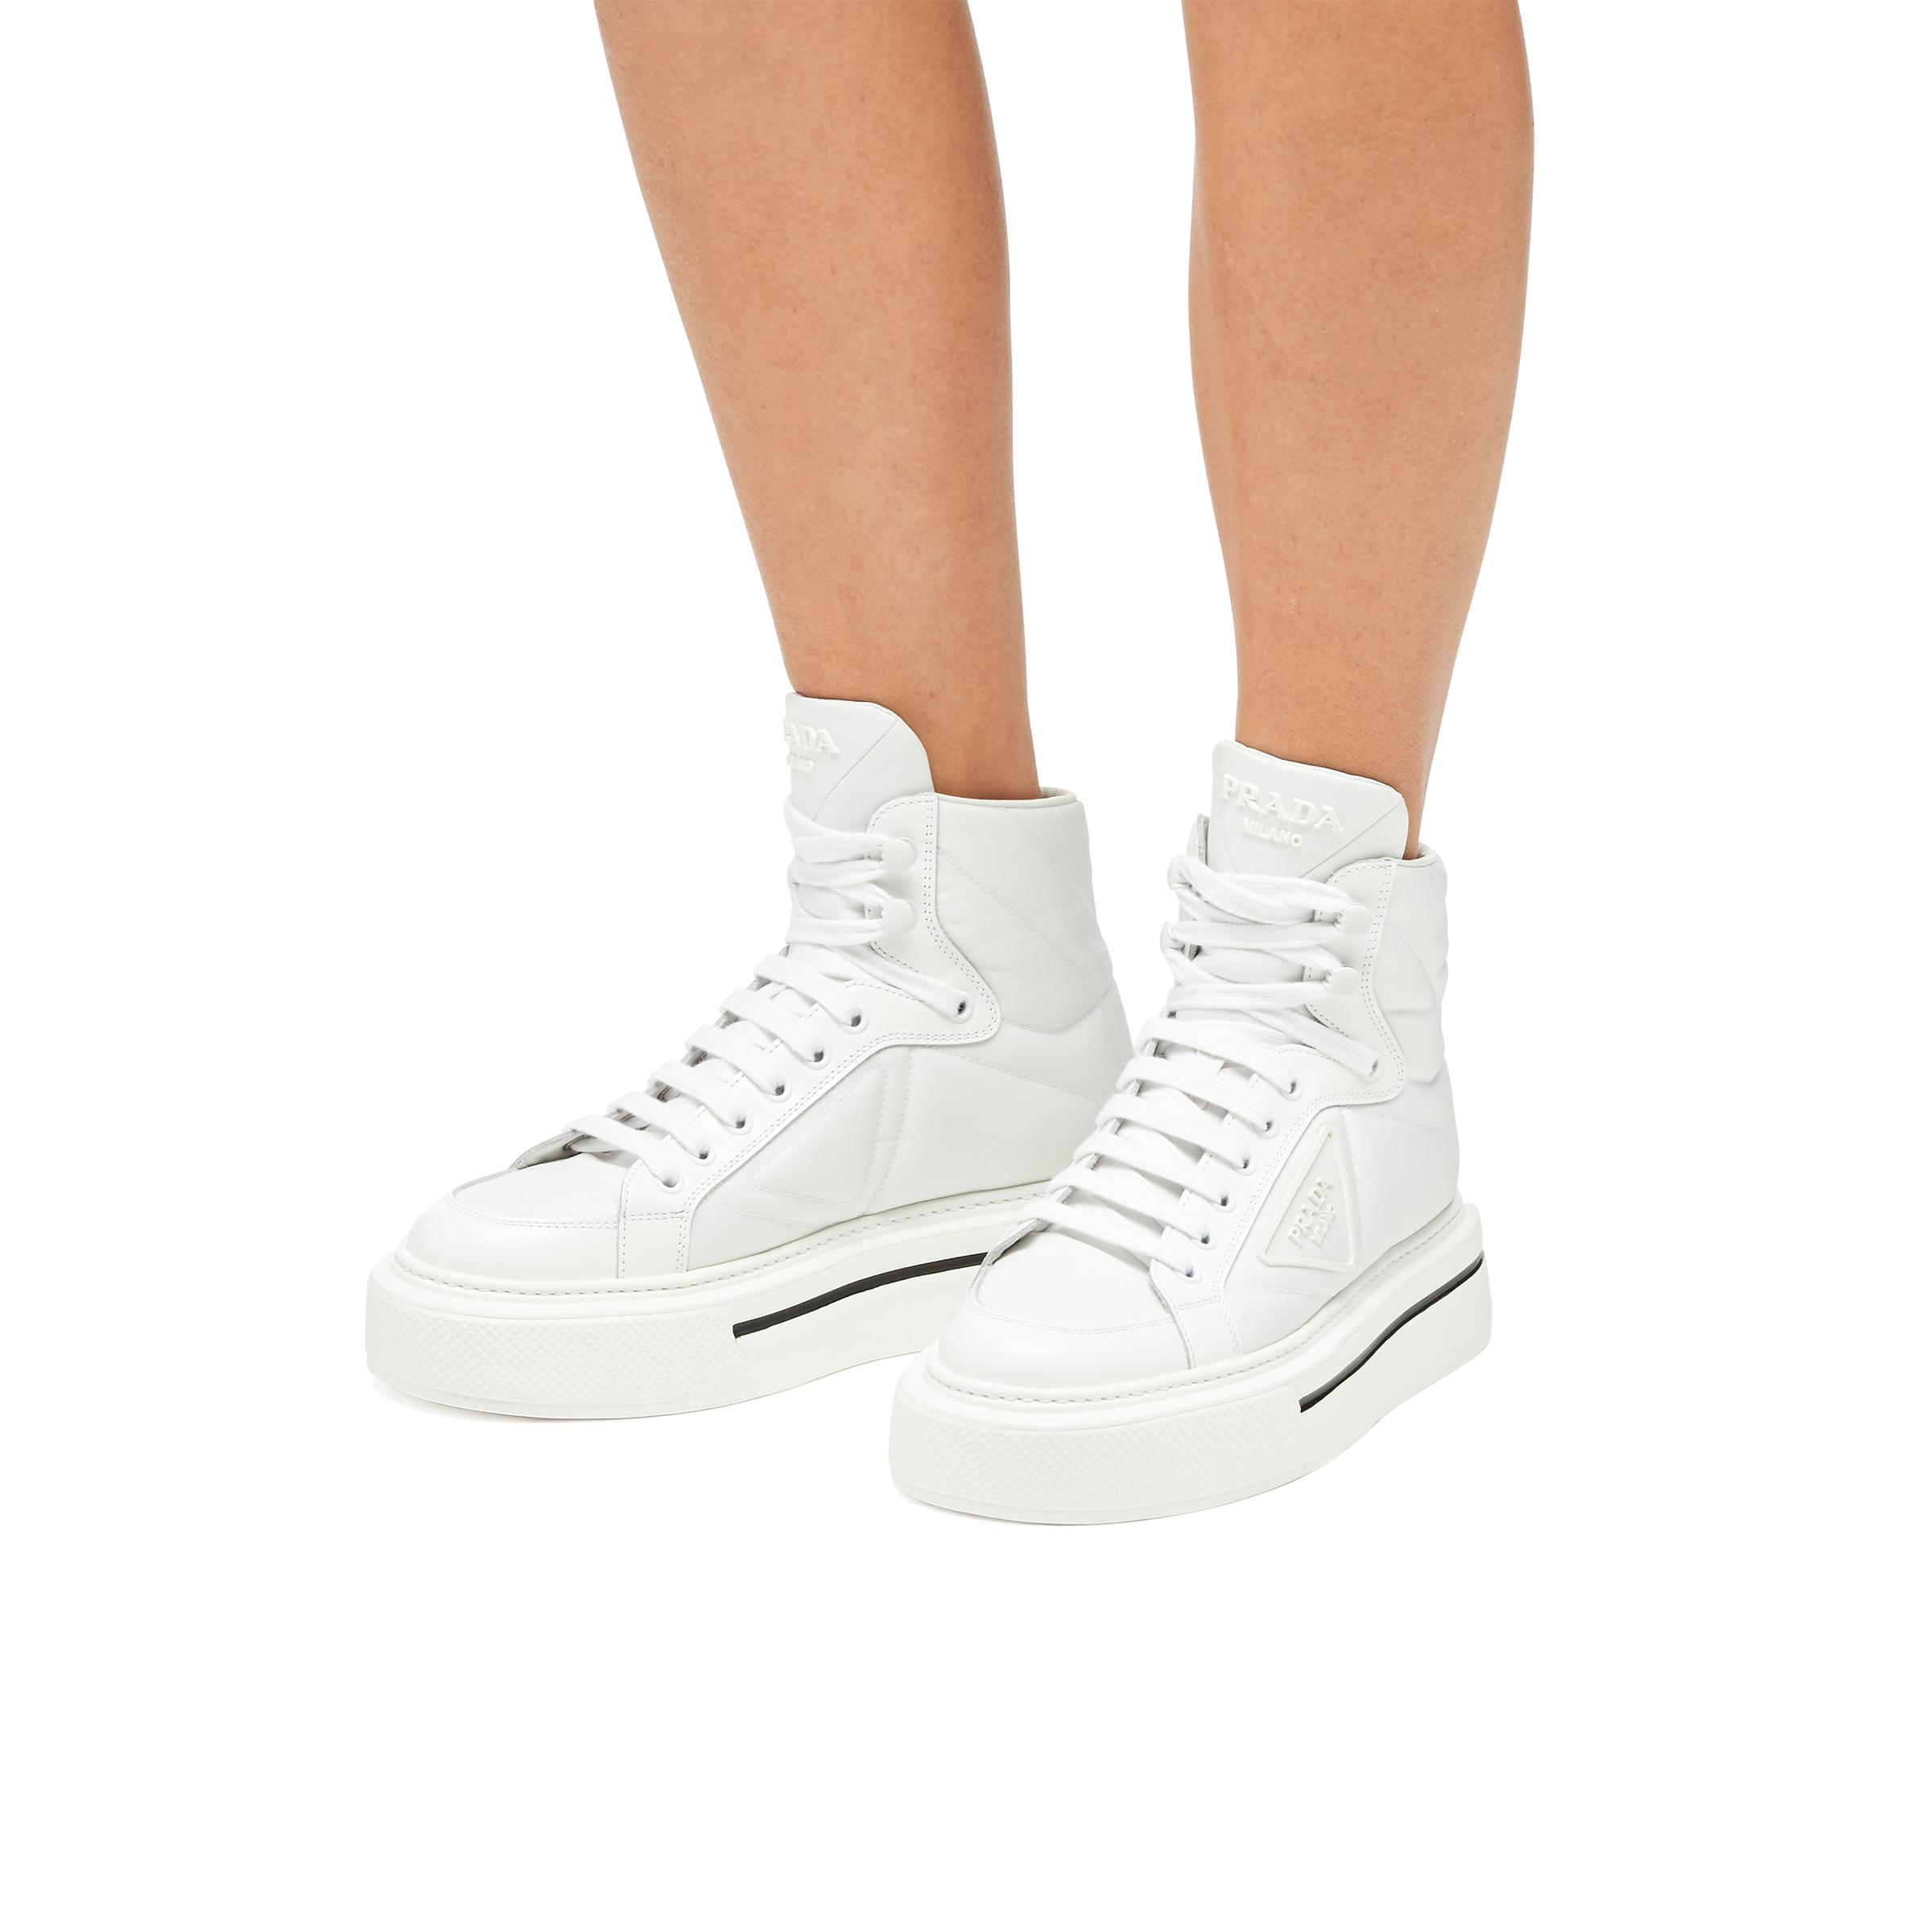 Macro Re-nylon And Brushed Leather High-top Sneakers Women White 4